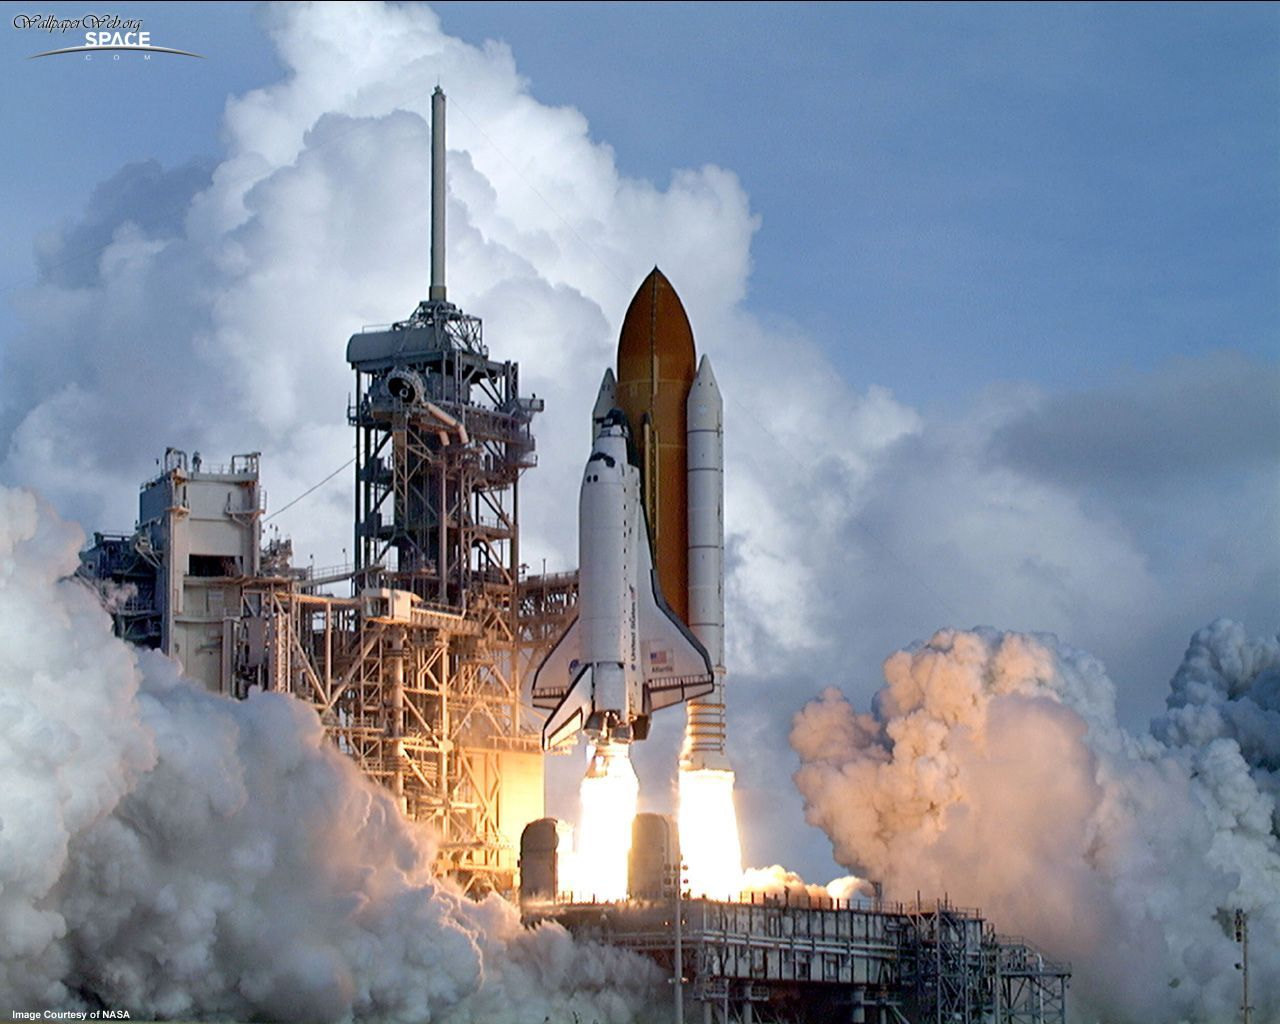 Space: Space Shuttle, picture nr. 26686